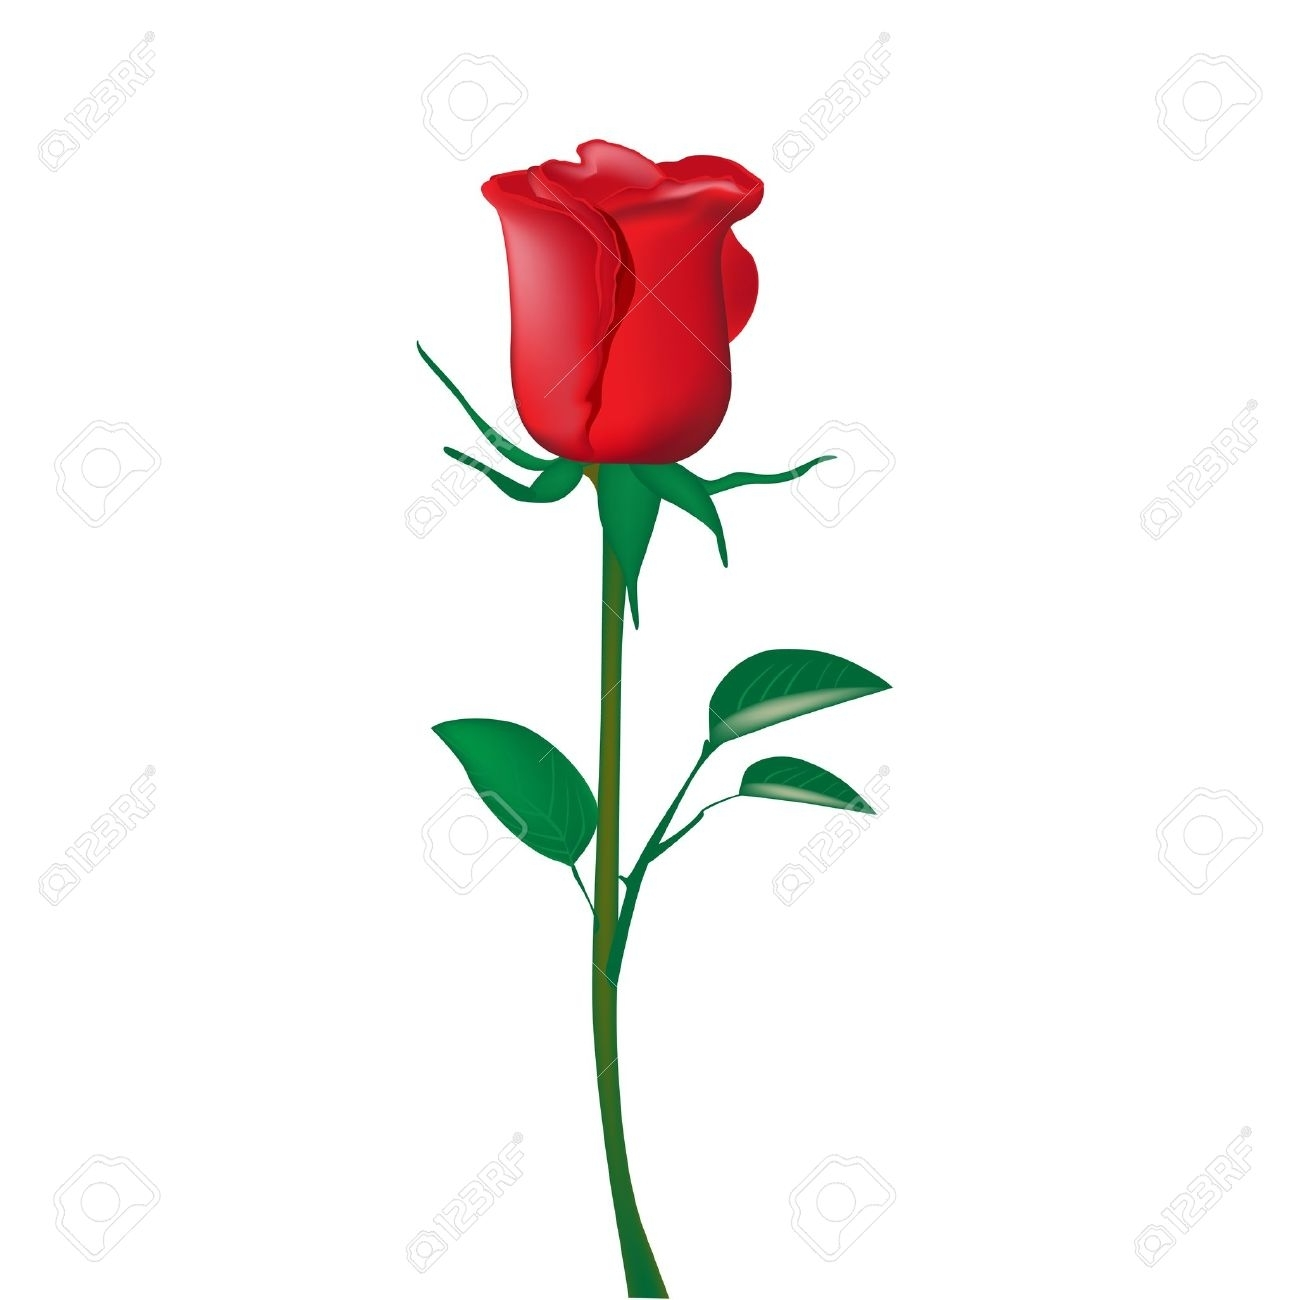 single red rose isolated on white royalty free cliparts, vectors